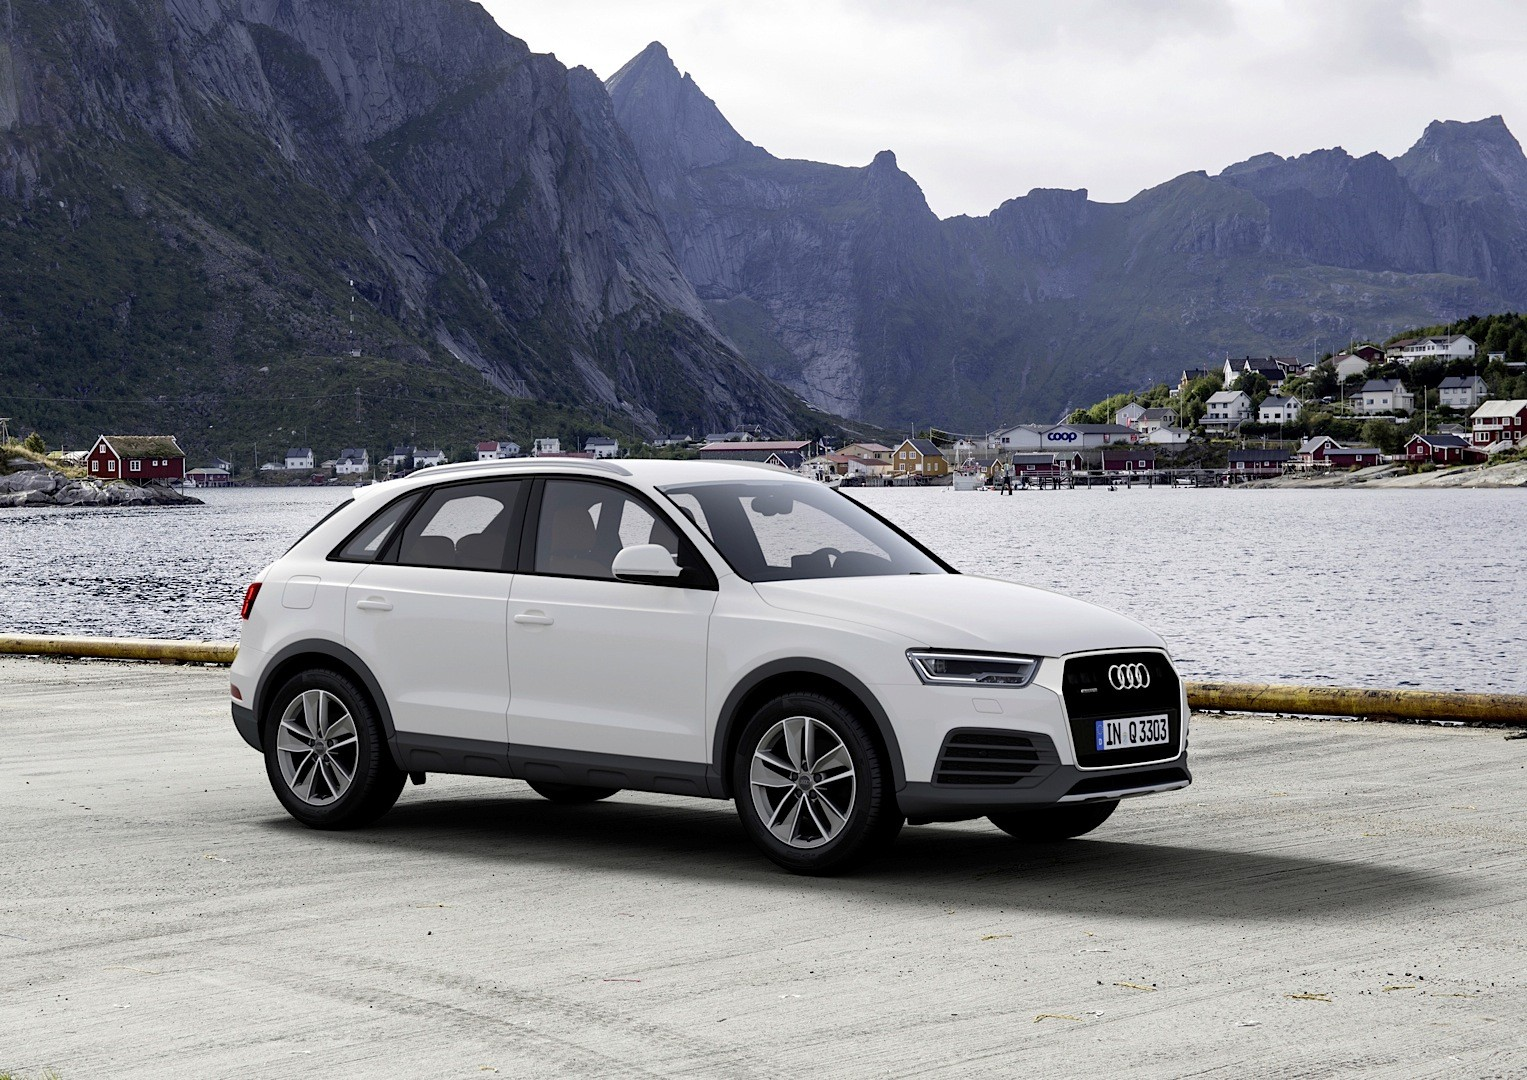 dough truth about audi two point cars small of suv rear review the blue quarter